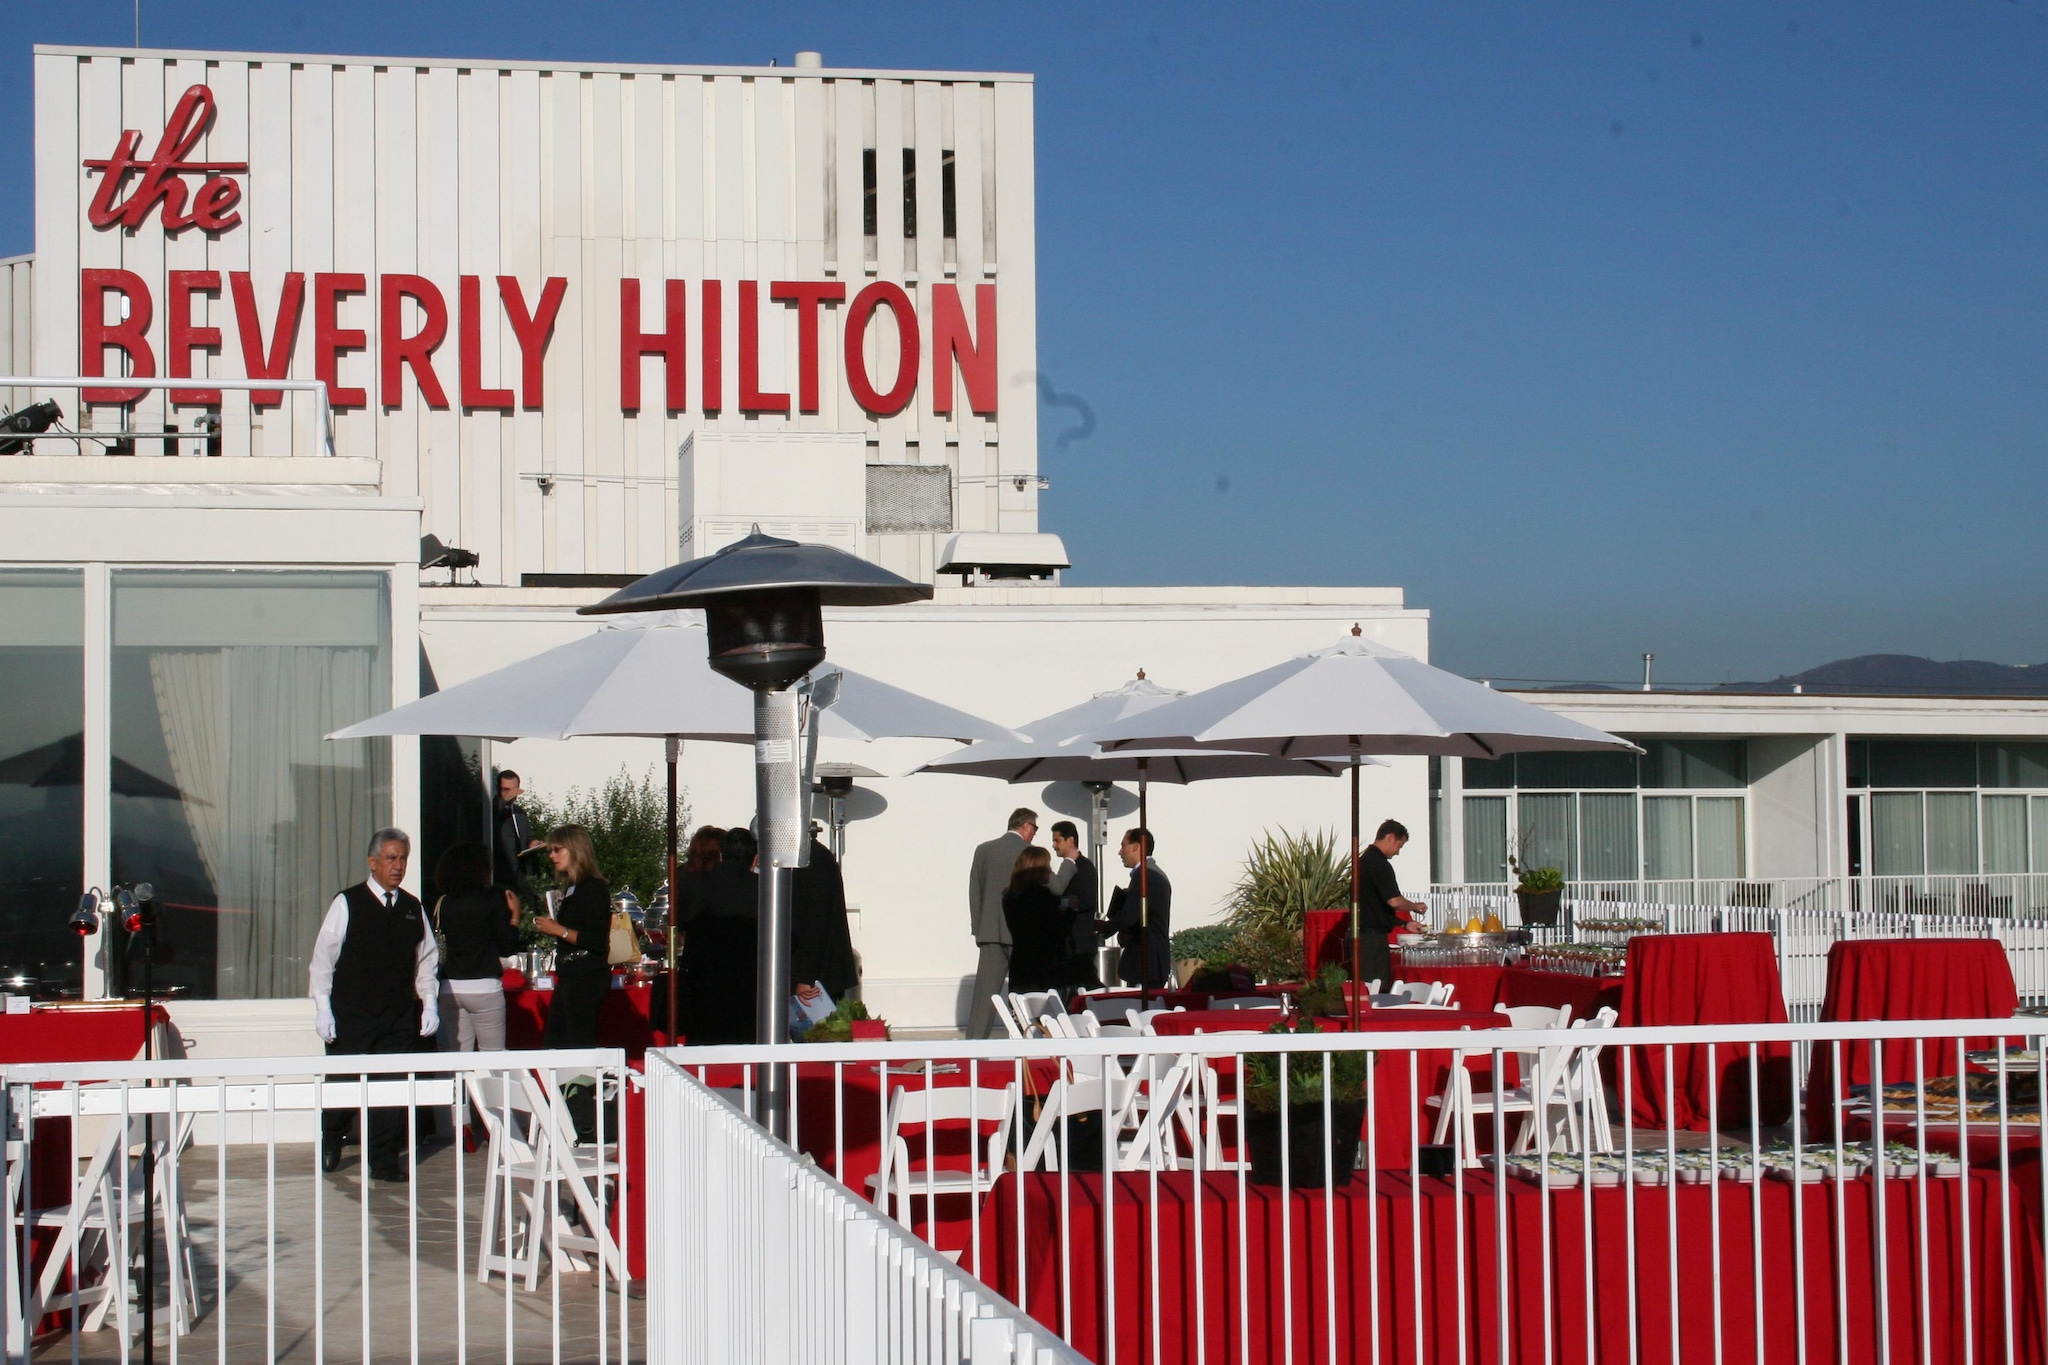 Historic Hotel The Beverly Hilton located in Los Angeles